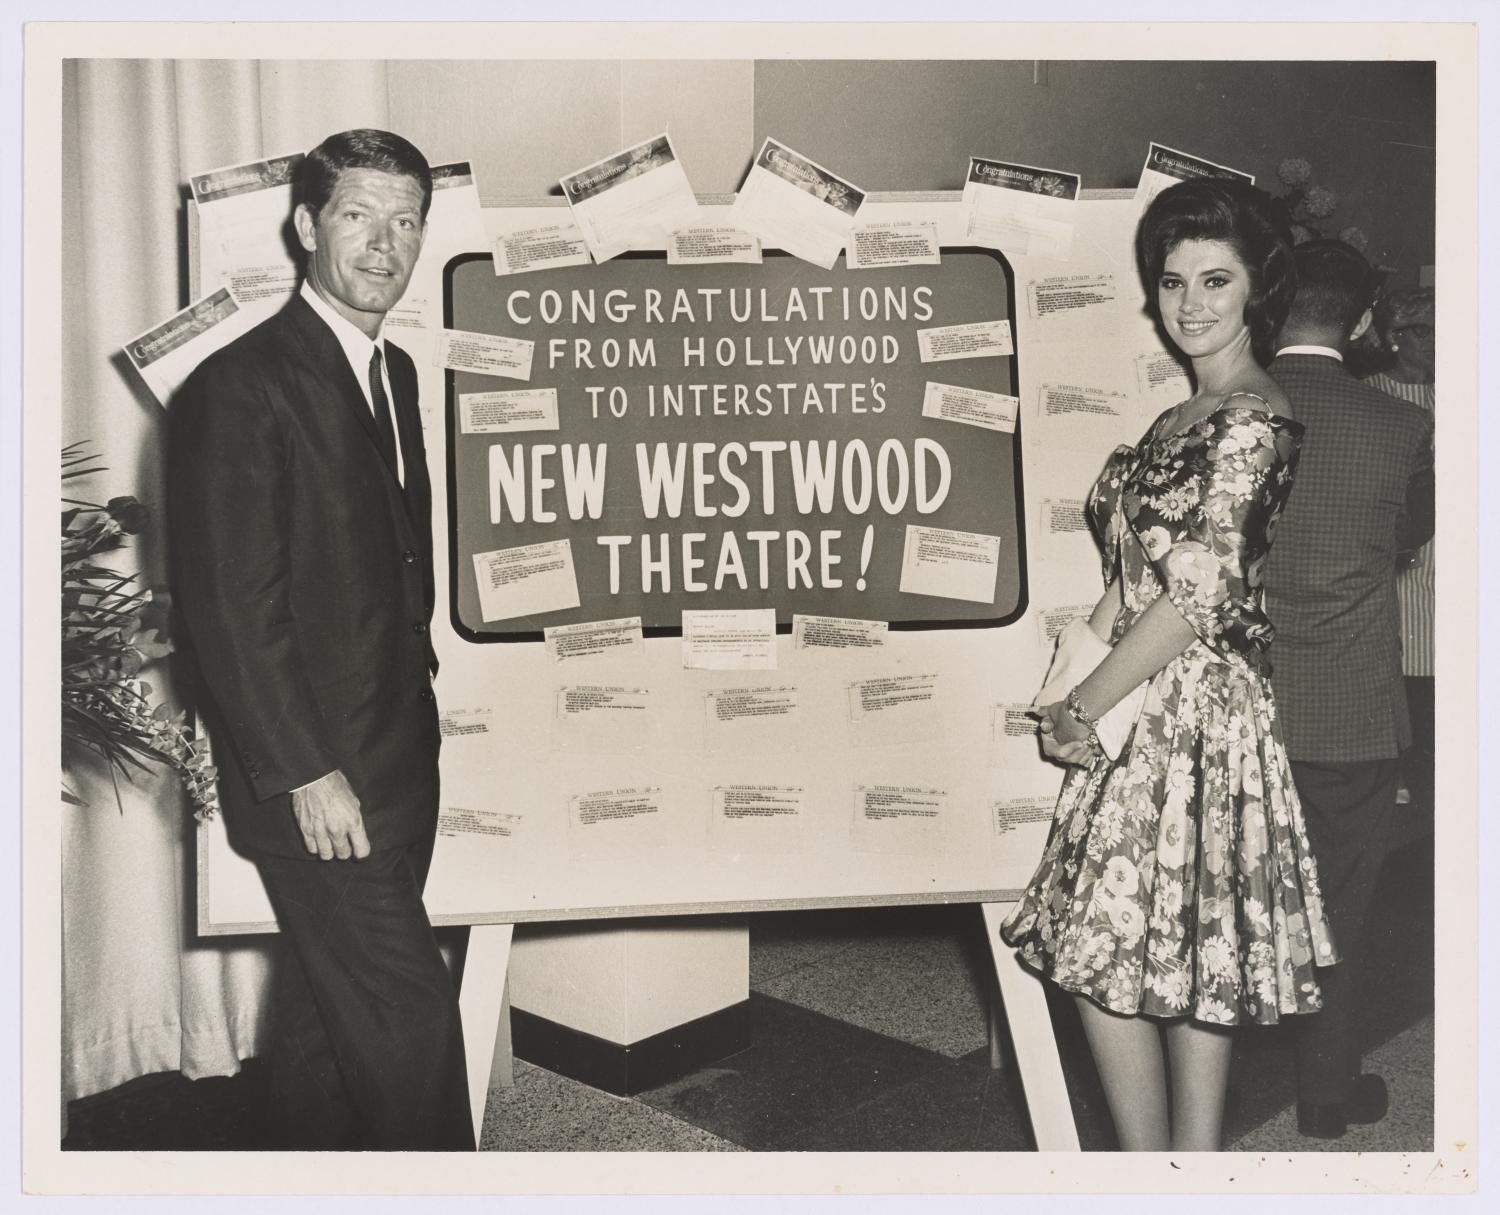 [Stephen Boyd and Beverly Adams at grand opening of Westwood Theatre], Photograph of actors Stephen Boyd and Beverly Adams at a publicity event for the grand opening of the Westwood Theatre in Richardson, Texas. Boyd and Adams pose in front of a poster covered in Western Union telegrams from Hollywood.,